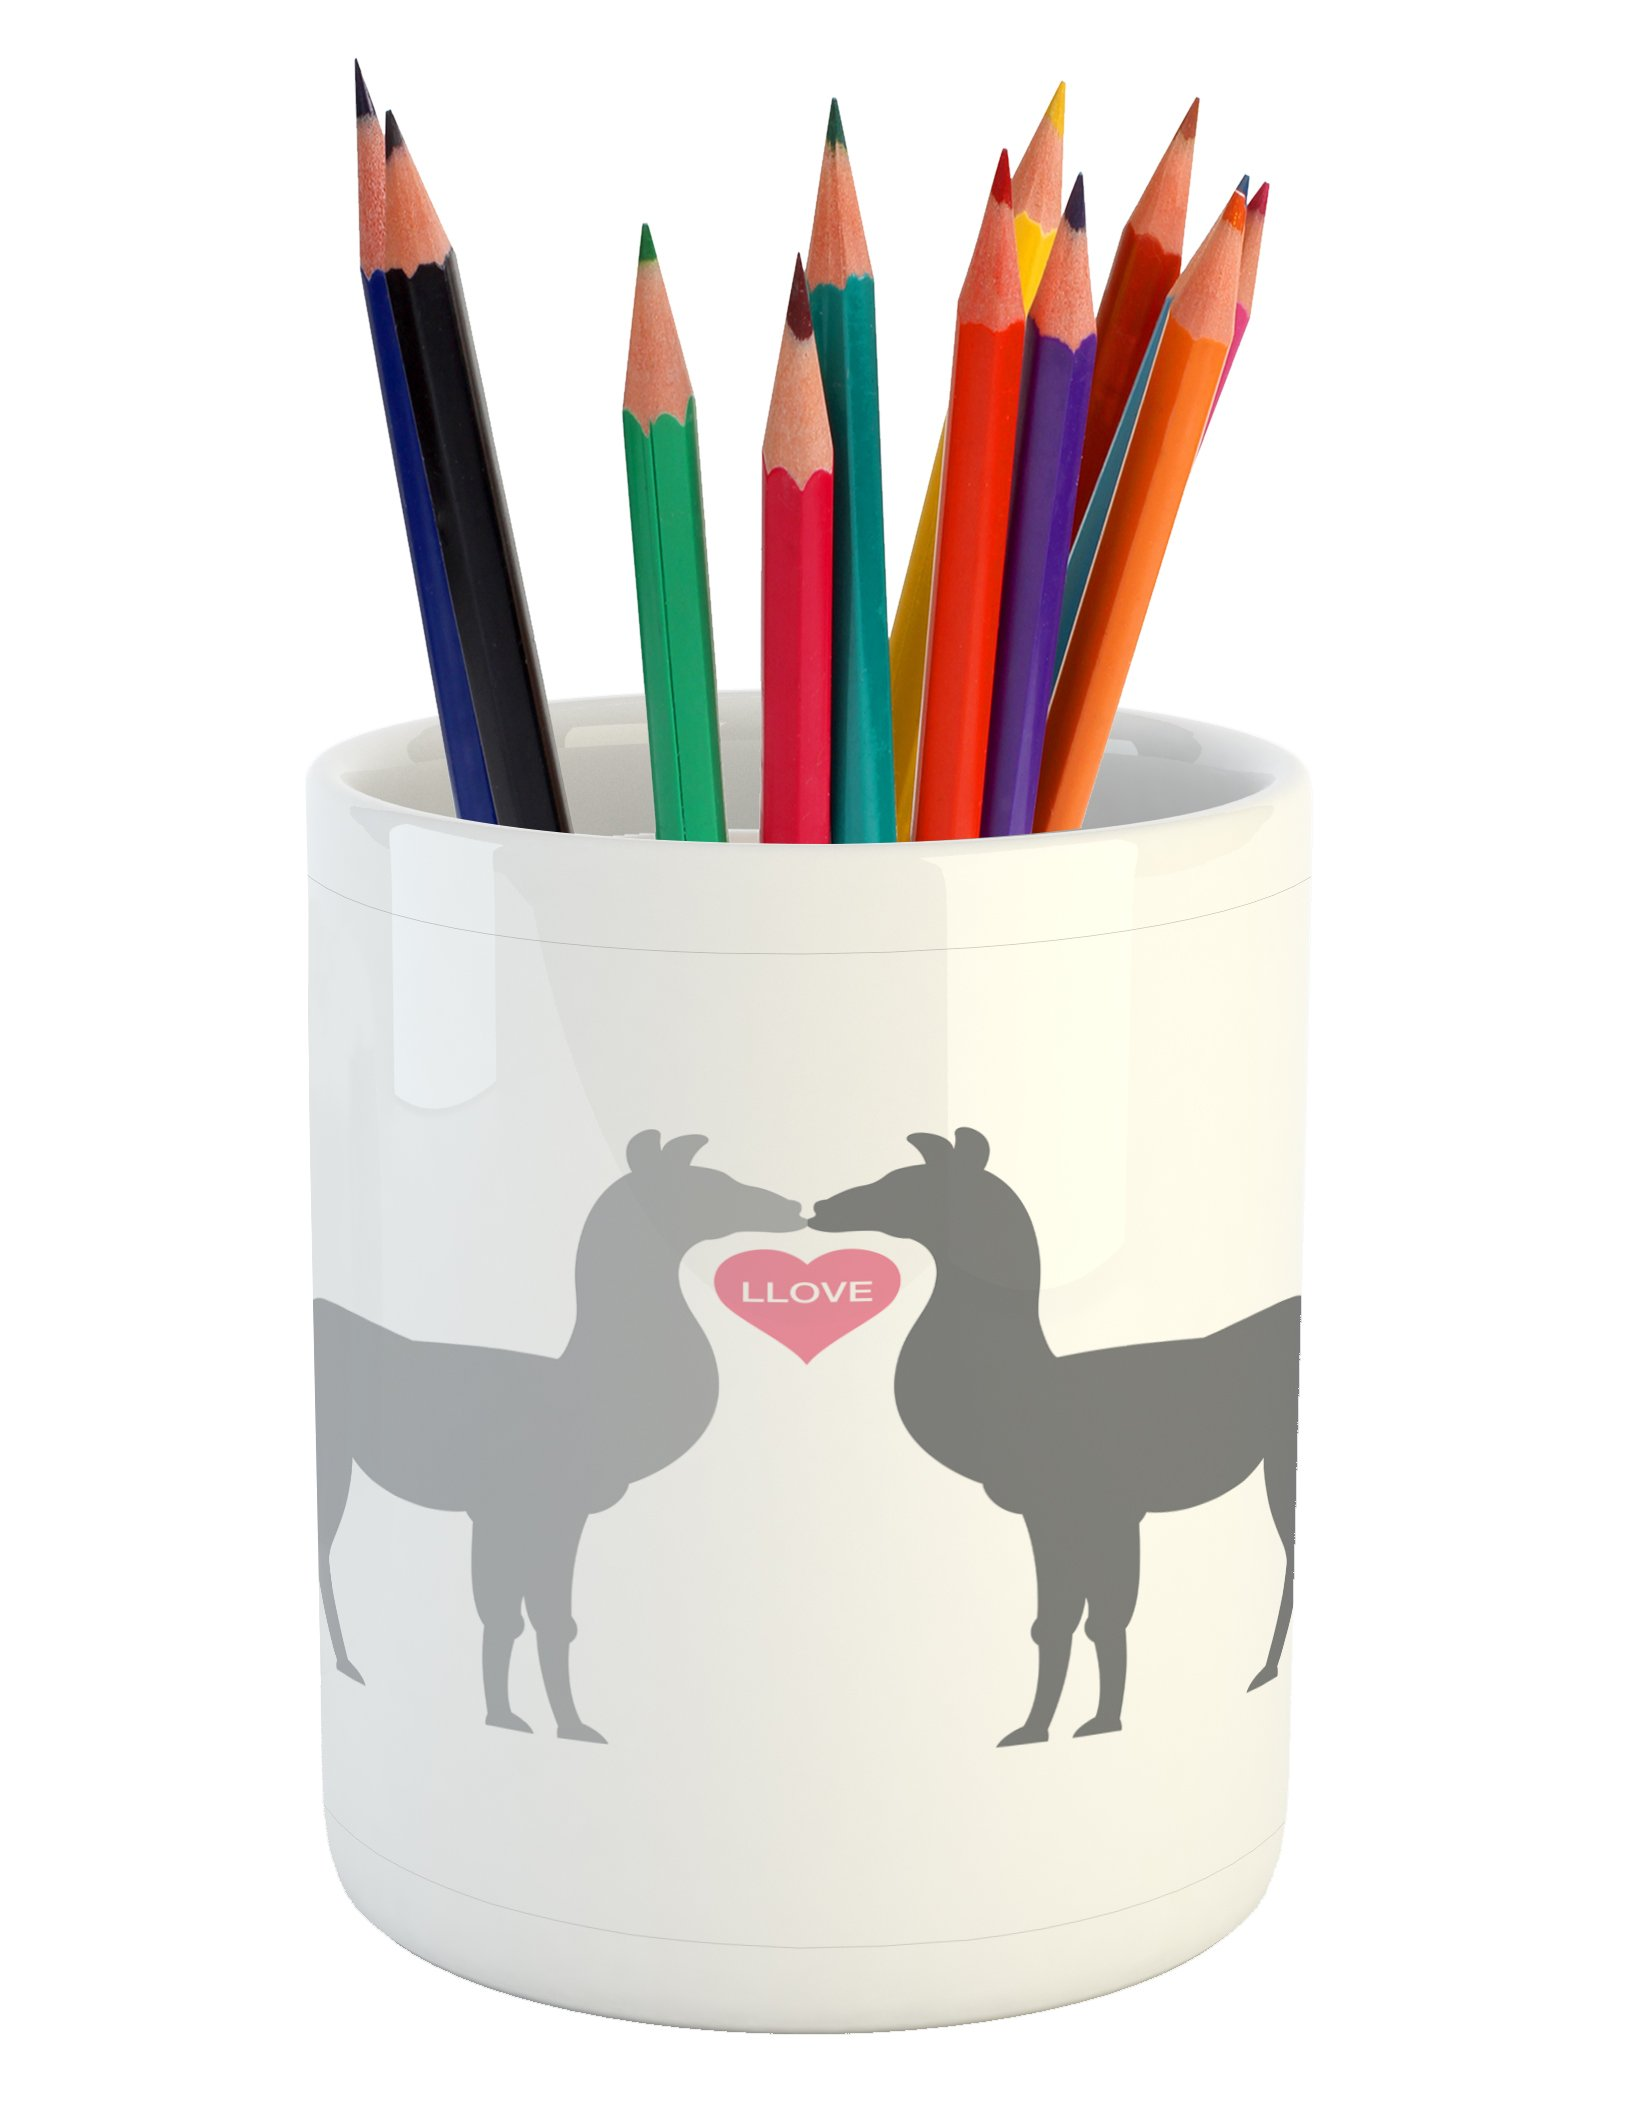 Ambesonne Llama Pencil Pen Holder, Two Animals in Love with a Heart Between Them LLove Quote Greyscale Animals, Printed Ceramic Pencil Pen Holder for Desk Office Accessory, Grey Pale Grey Pink